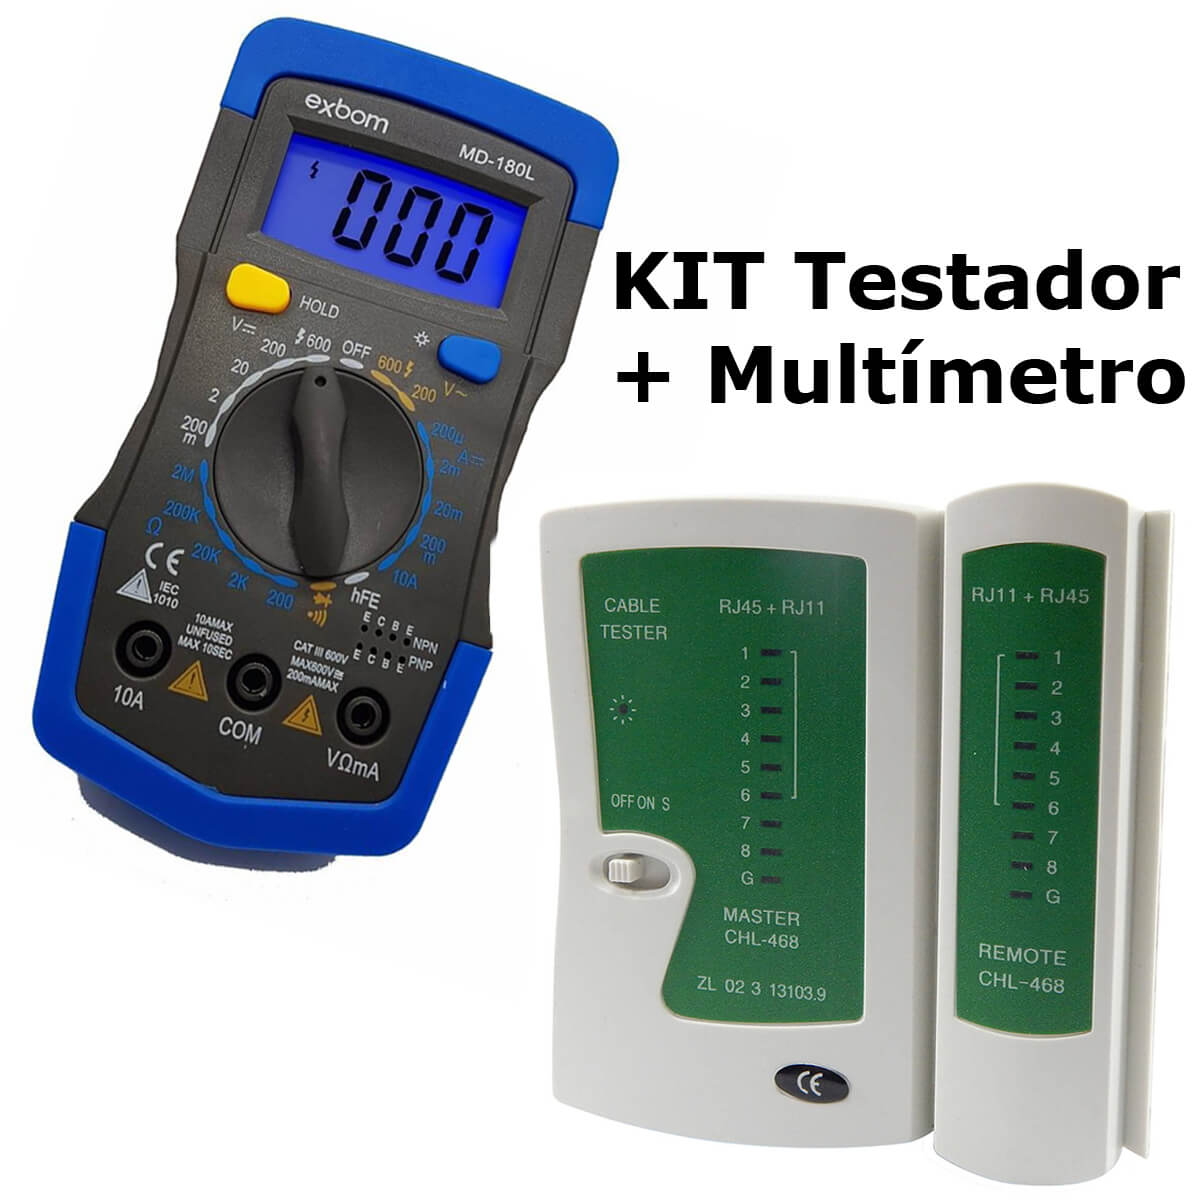 KIT Multímetro Digital MD-180L + Testador de Cabo RJ45 e RJ11